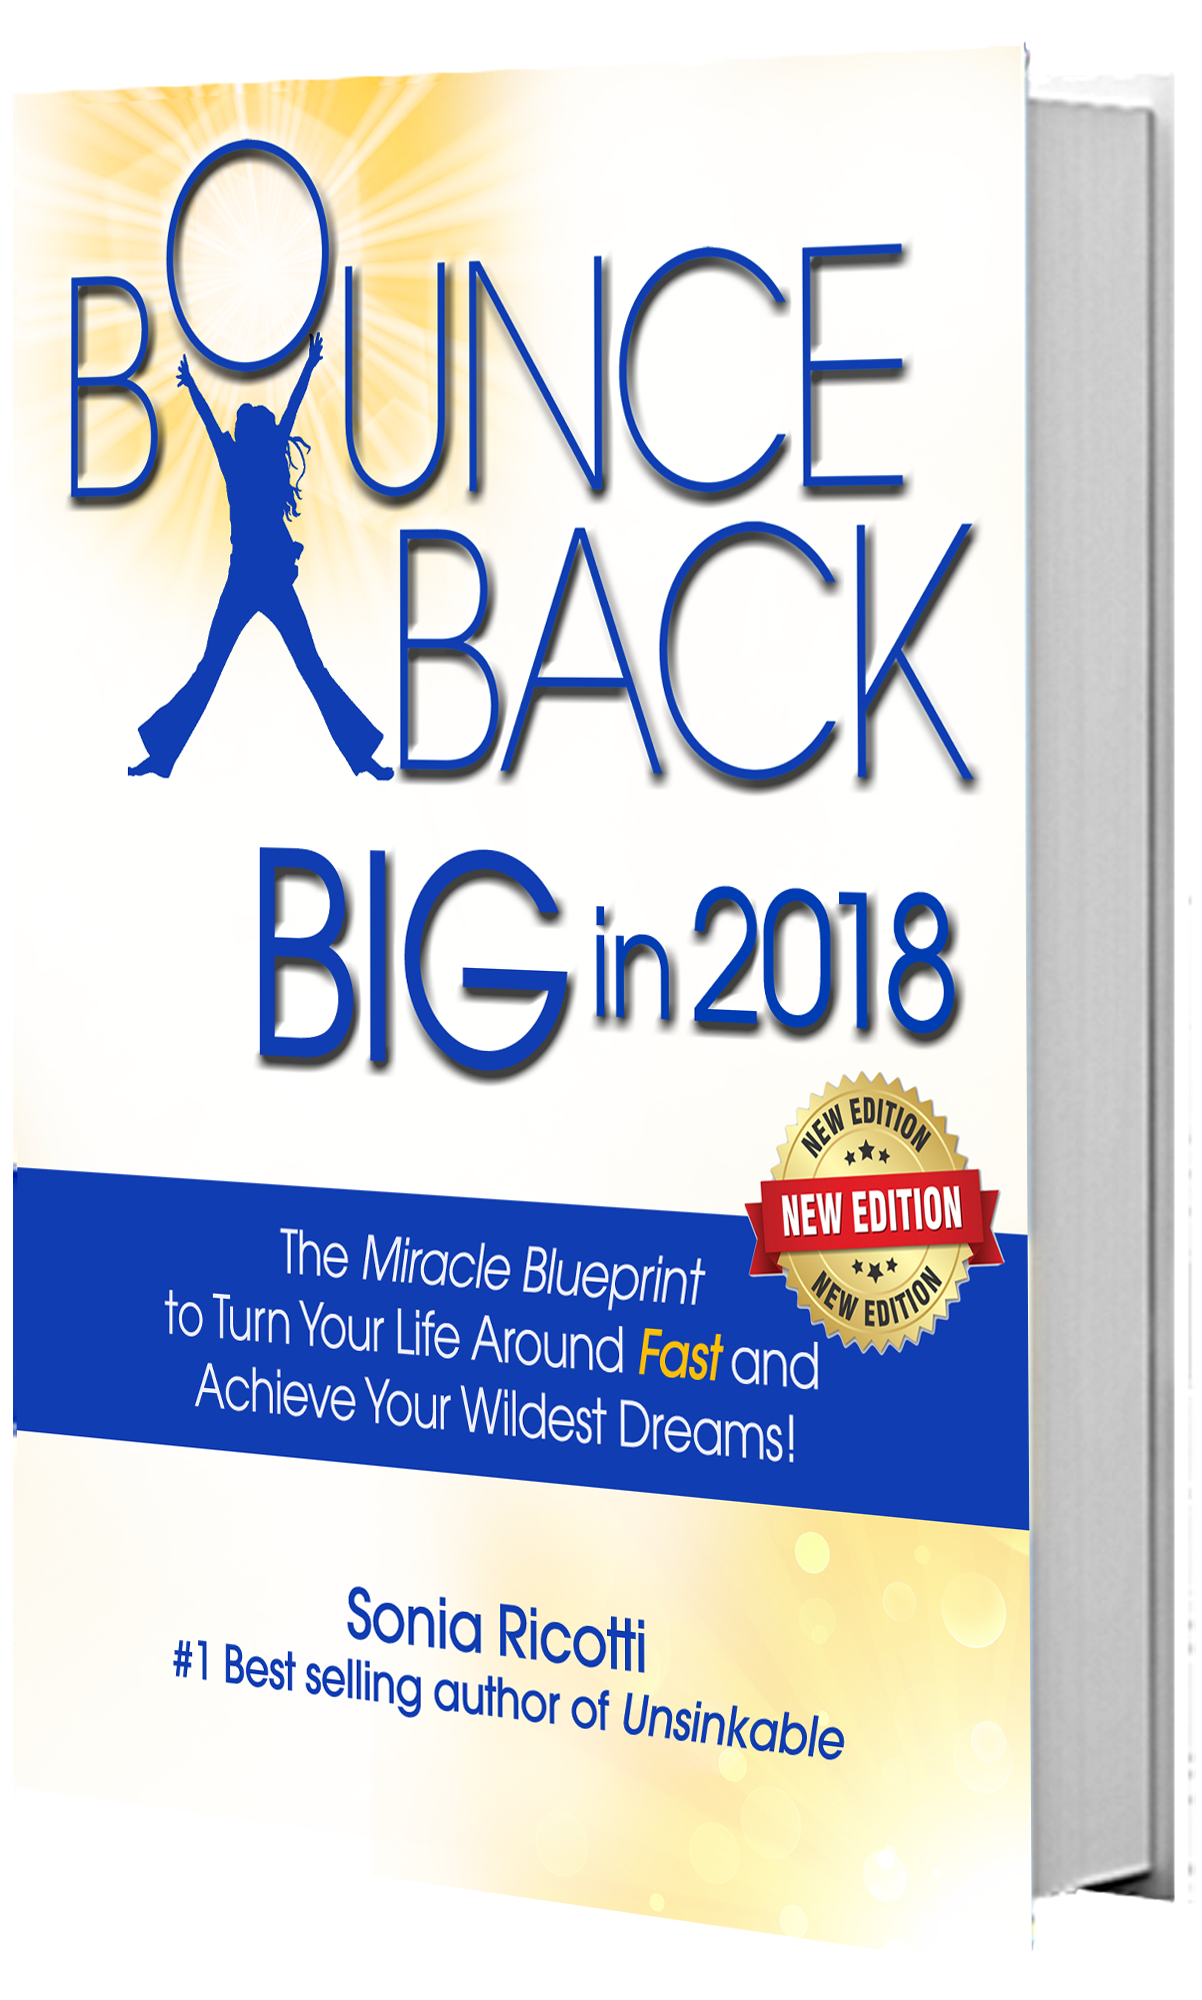 """Bounce Back BIG in 2018"" with Sonia Ricotti: -FREE e-book 1 ""Bounce Back BIG in 2018"" with Sonia Ricotti: -FREE e-book"